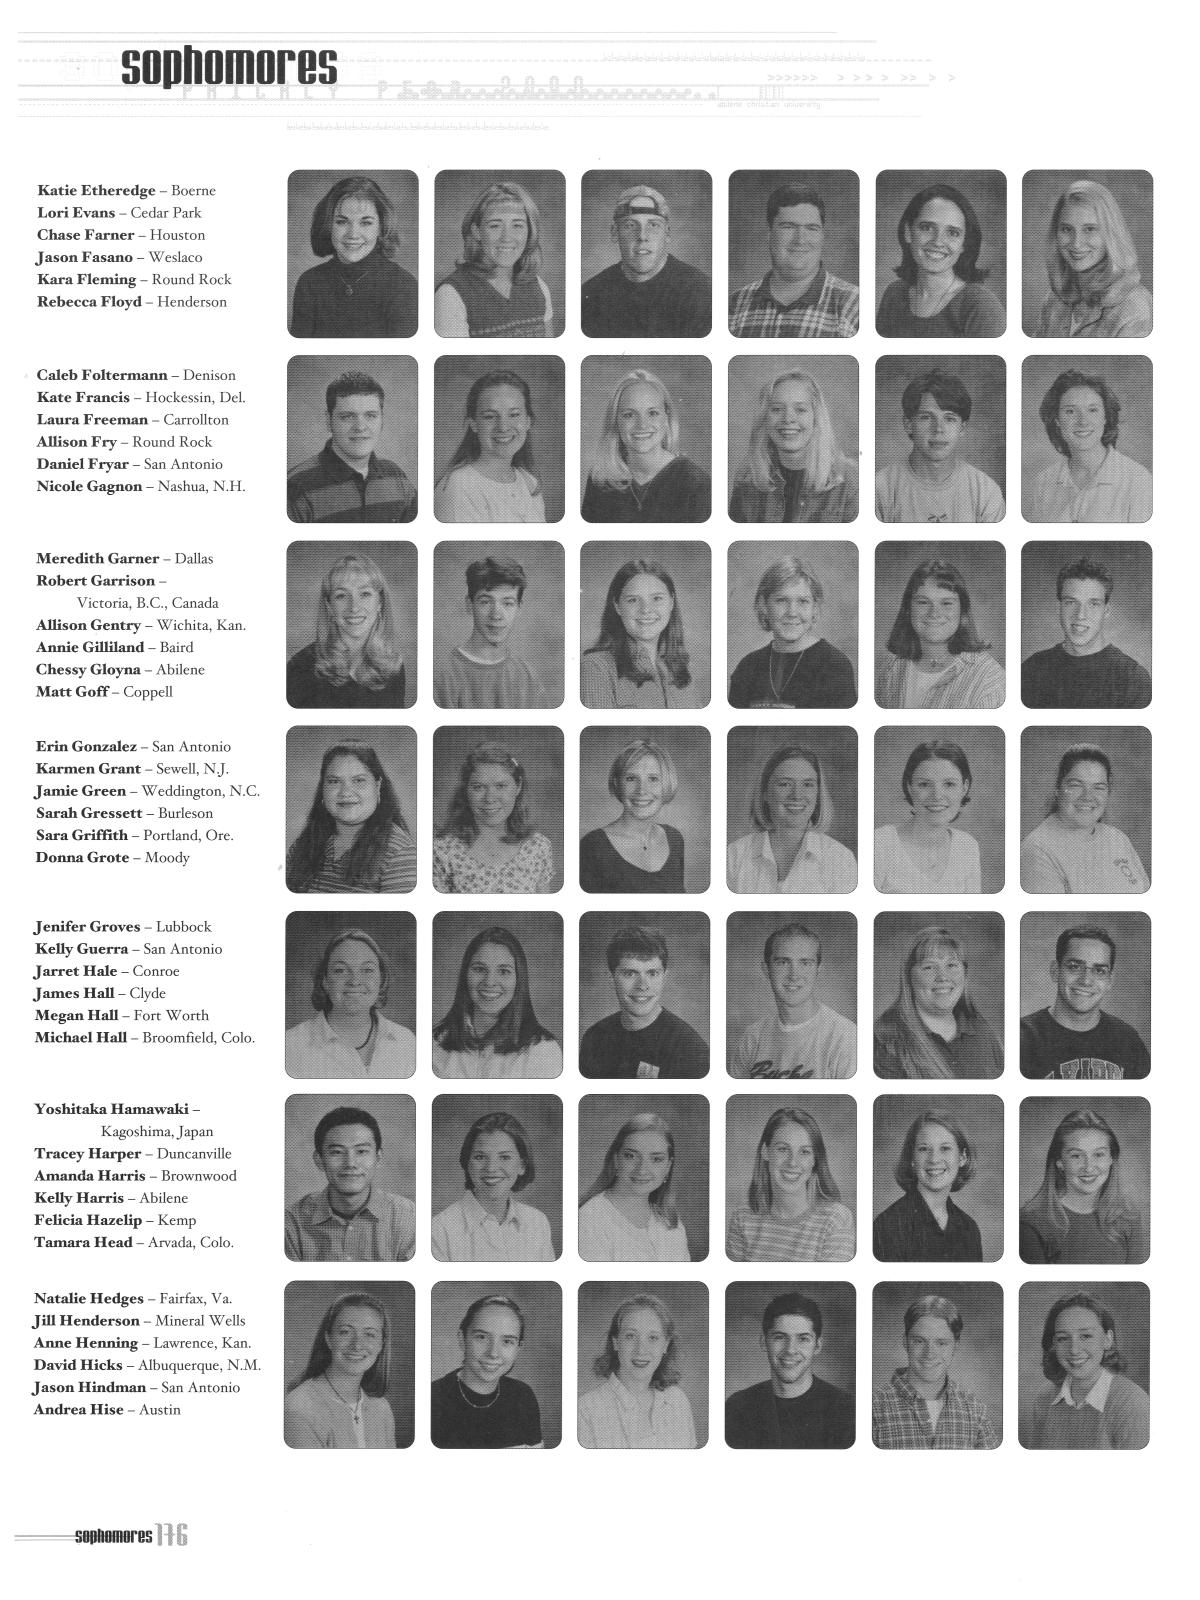 Prickly Pear Yearbook Of Abilene Christian University